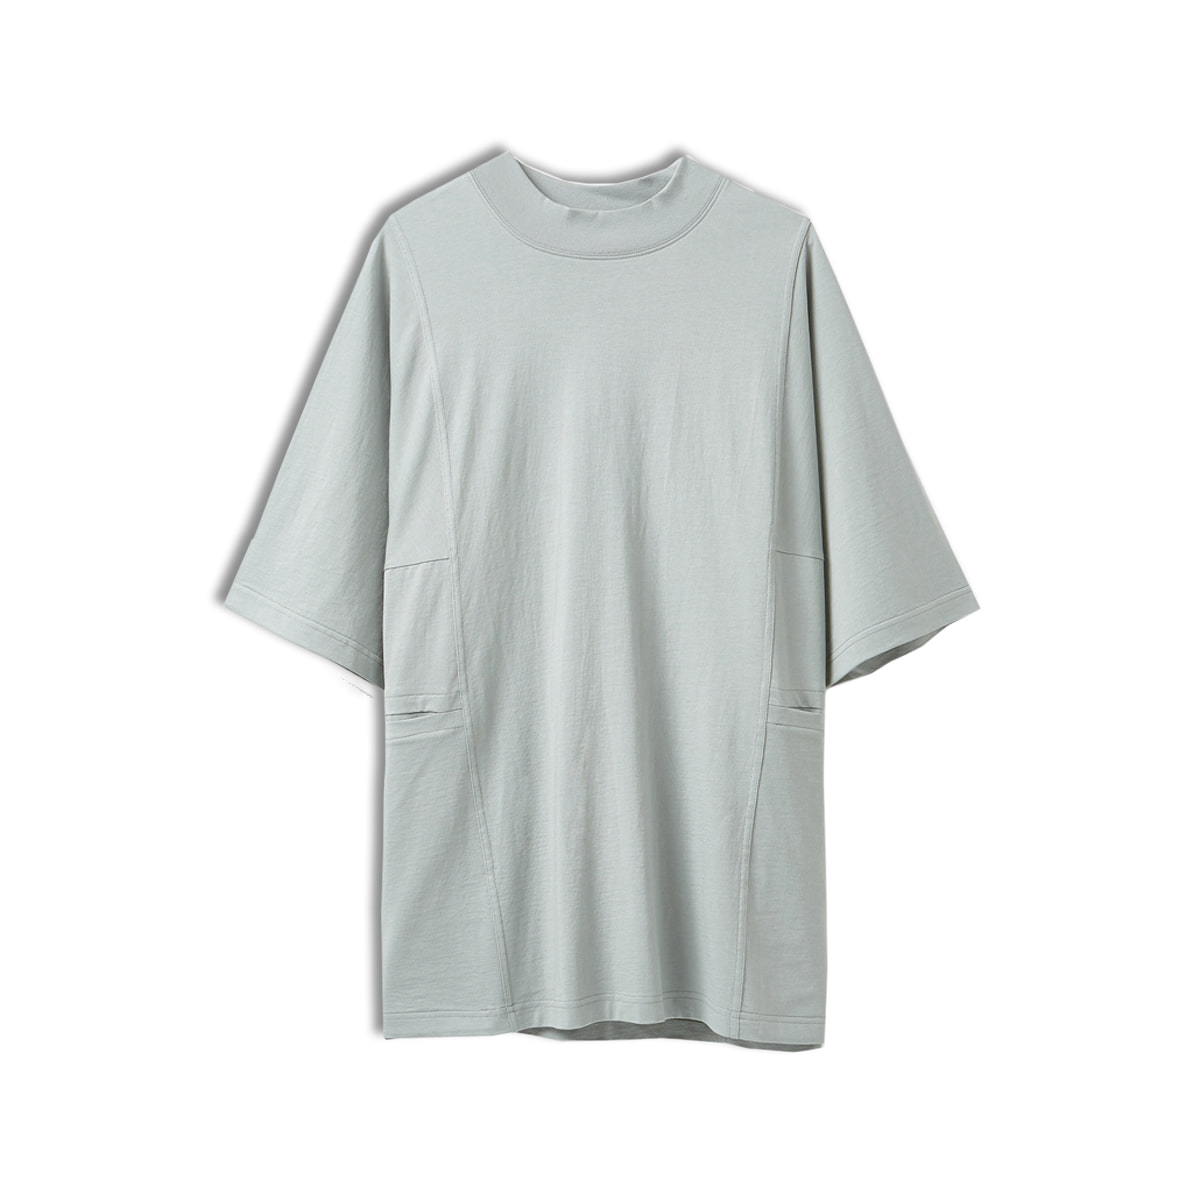 [YOUTH] MOCK NECK T-SHIRT 'GREY'